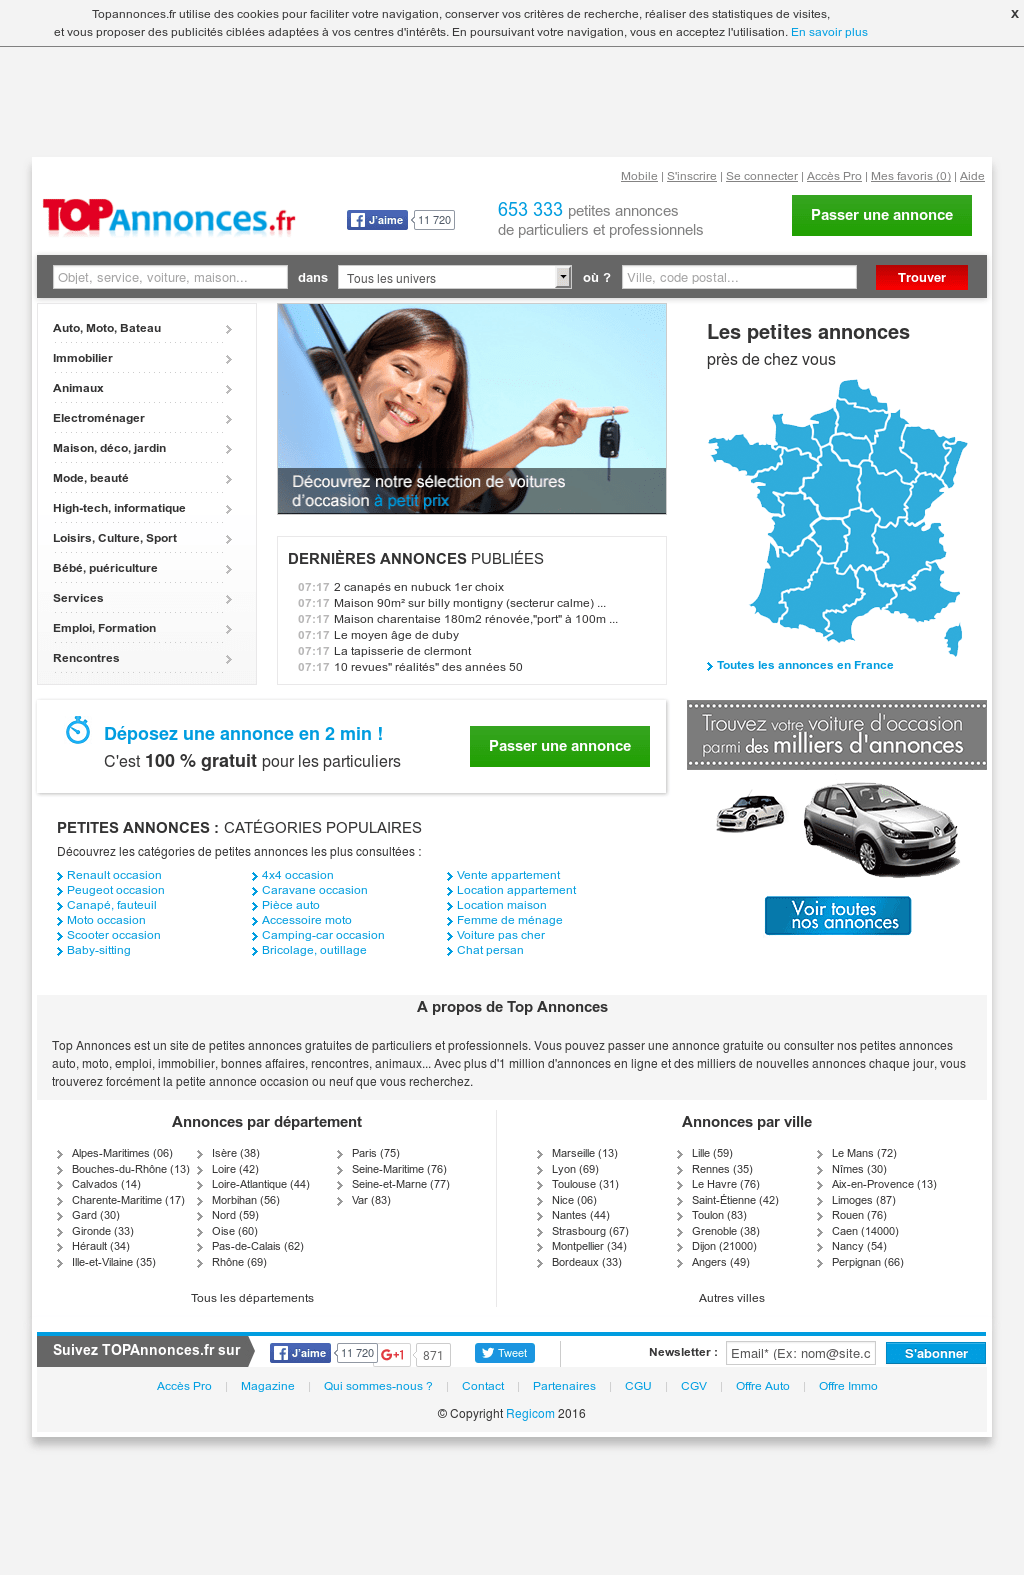 Rennes Marseille Pas Cher Topannonces Competitors Revenue And Employees Owler Company Profile